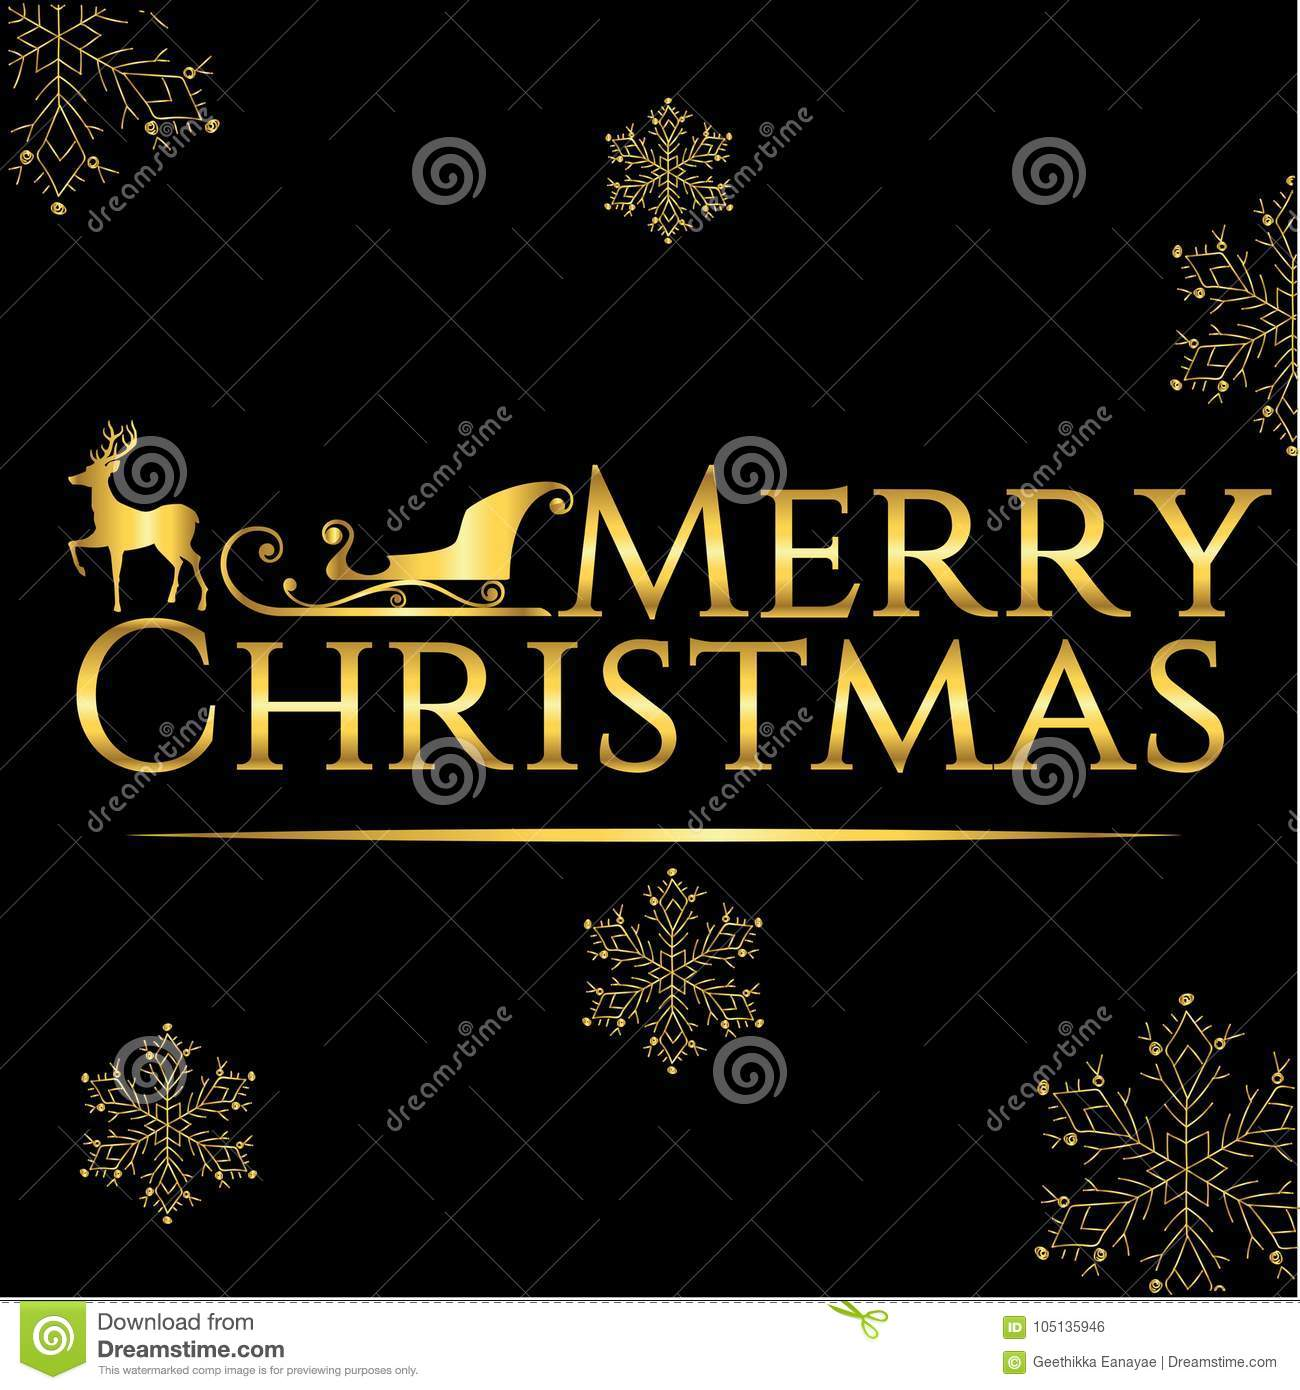 Merry Christmas Greetings Card Black And Gold Stock Vector